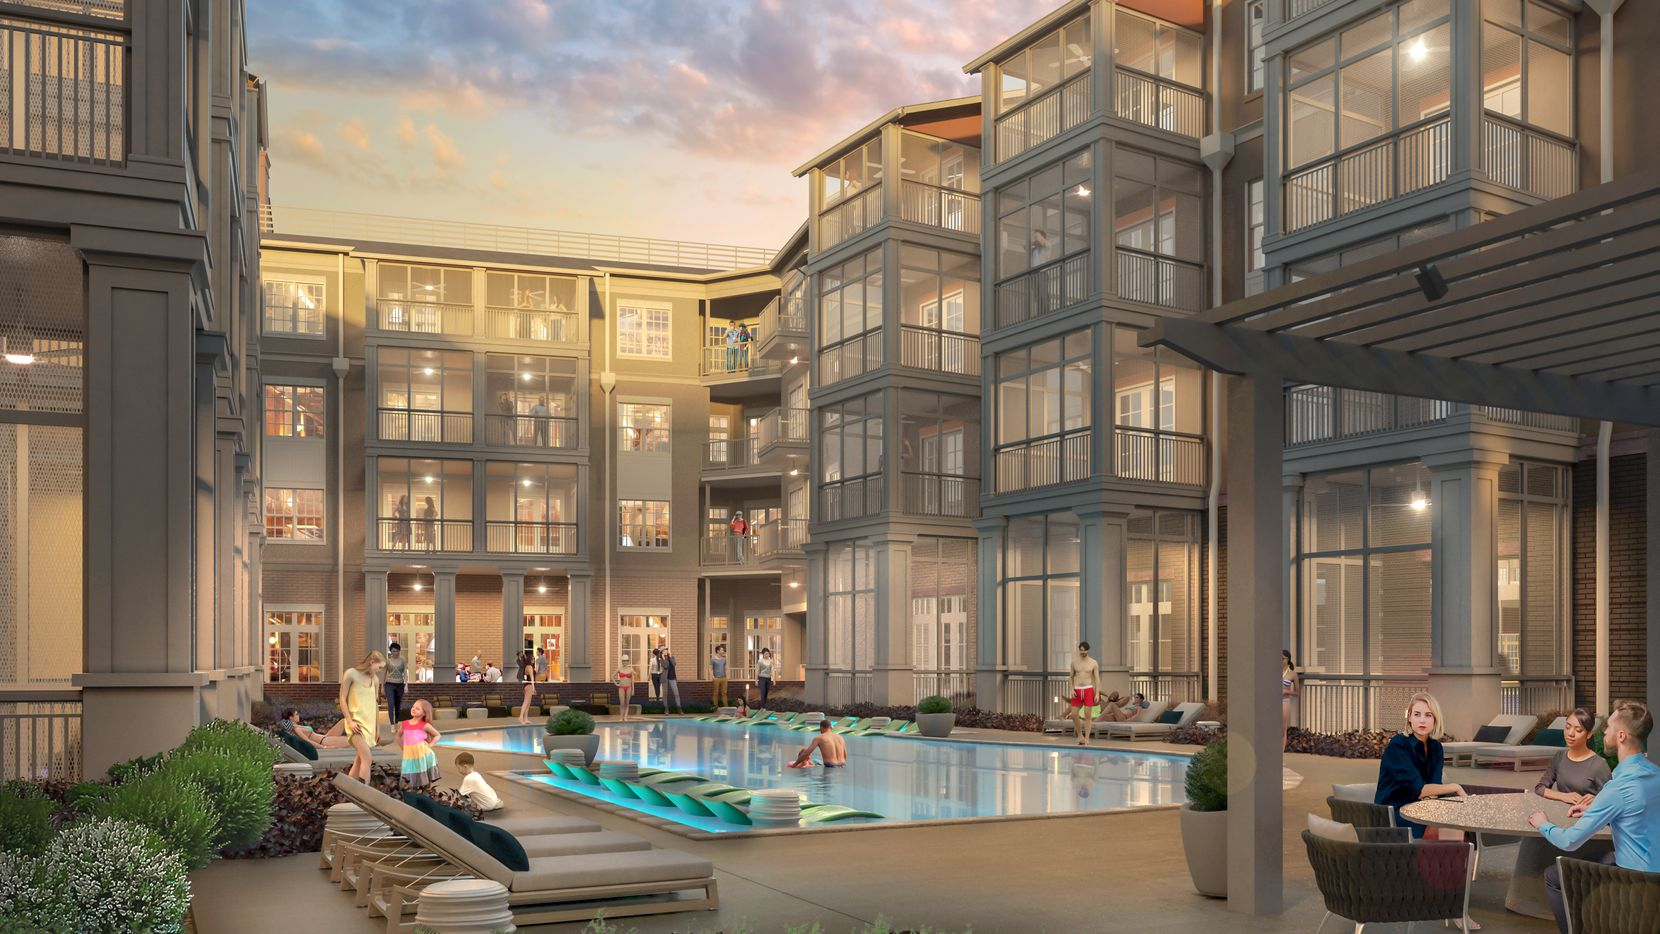 The Margo Apartments will be the third phase of The Canals at Grand Park development.